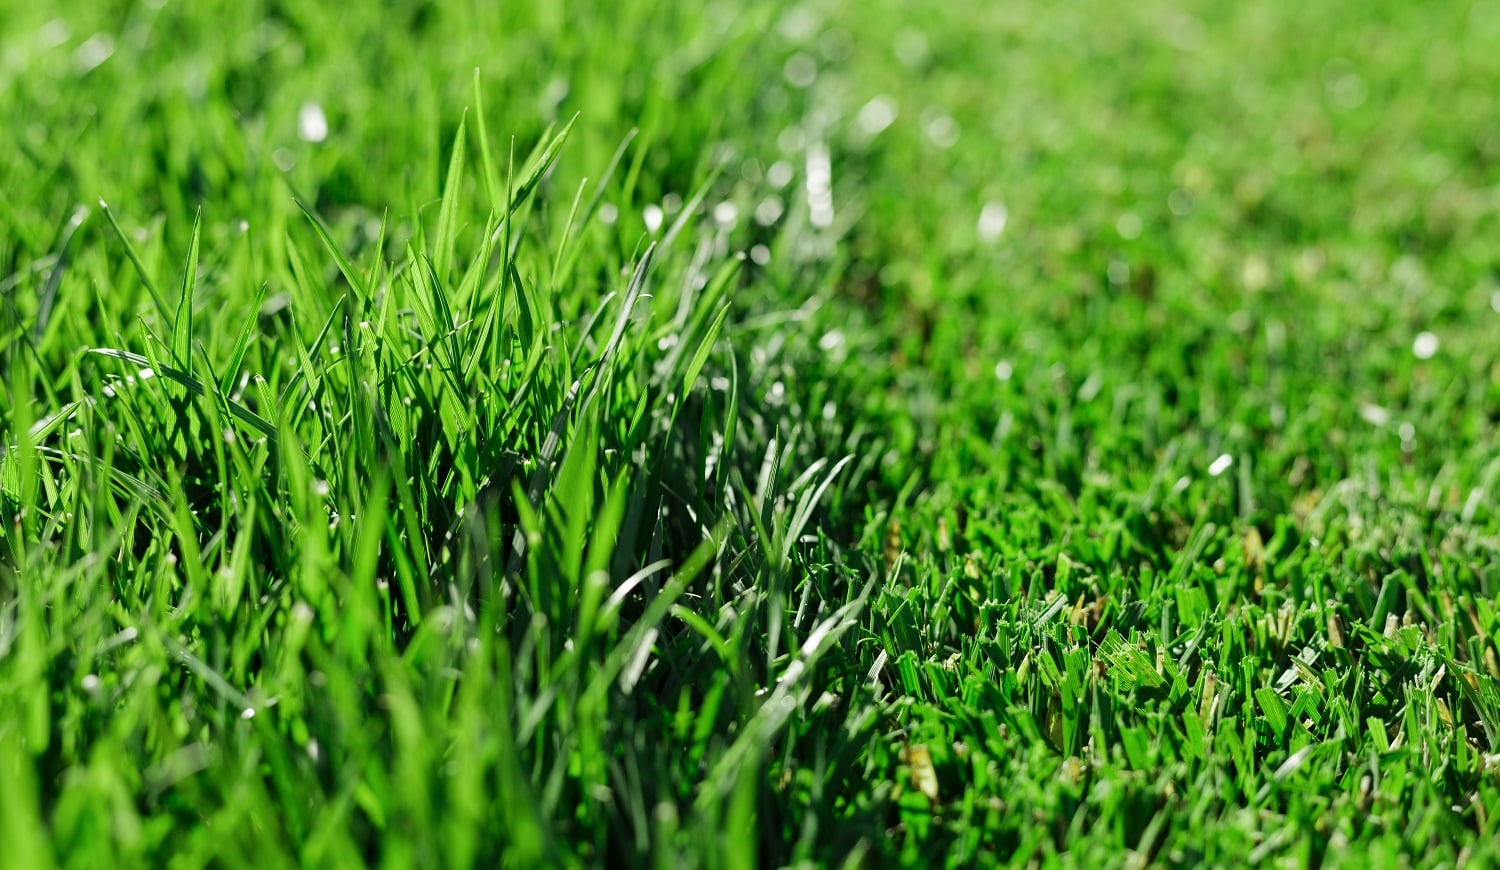 Green fresh grass. Partially cut grass lawn. Difference between perfectly mowed, trimmed garden lawn or field for sports, golf and long uncut grass. Lawn, carpet, natural green trimmed grass field